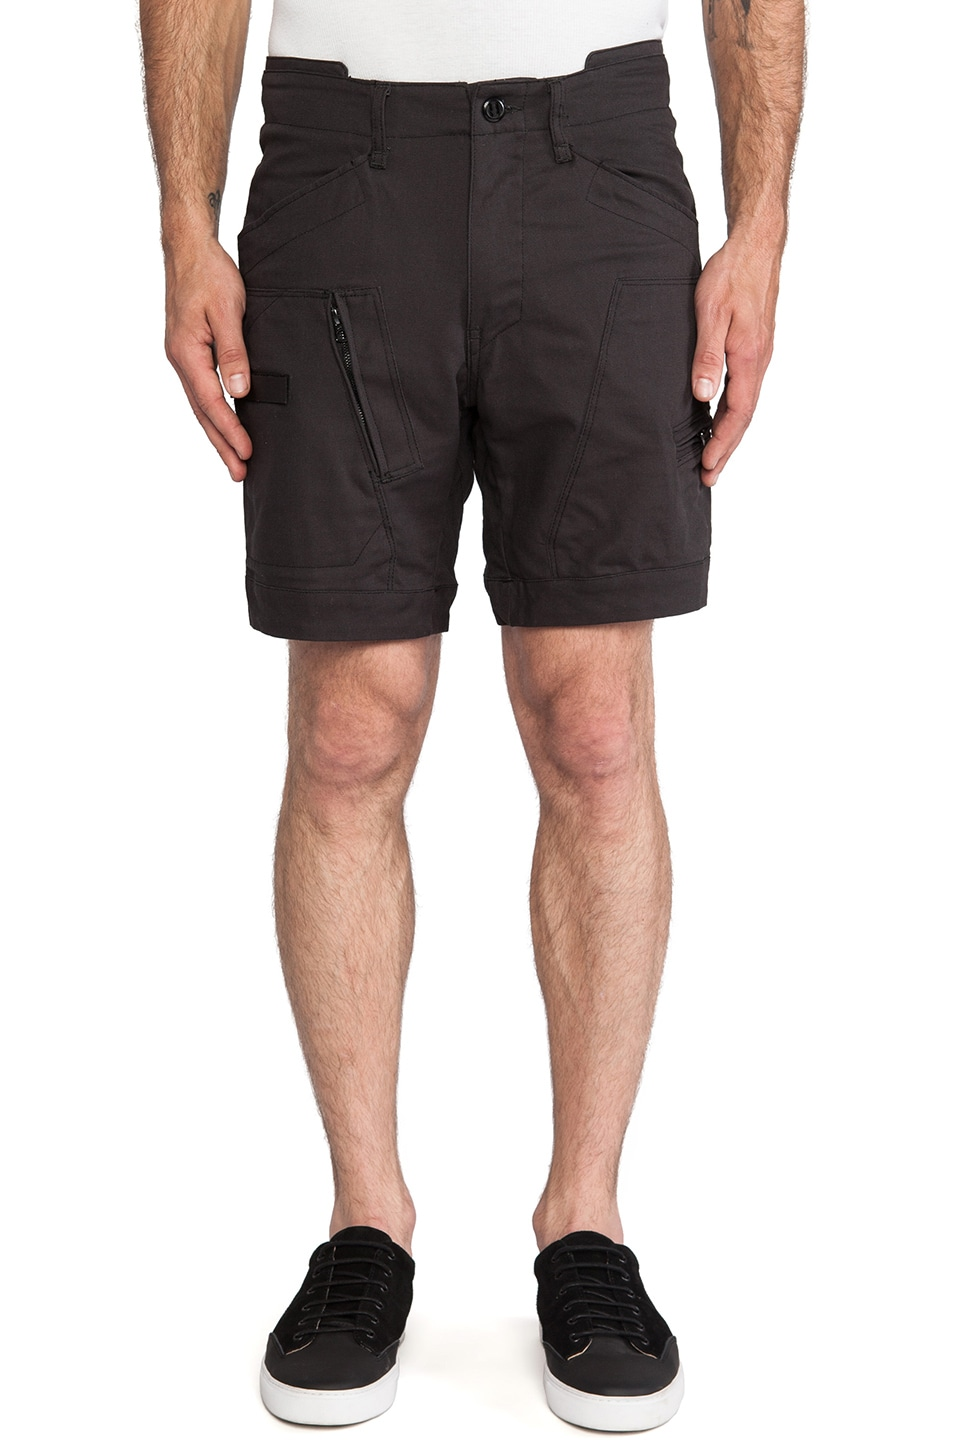 G-Star Powell Diamond Denim Short in Raven